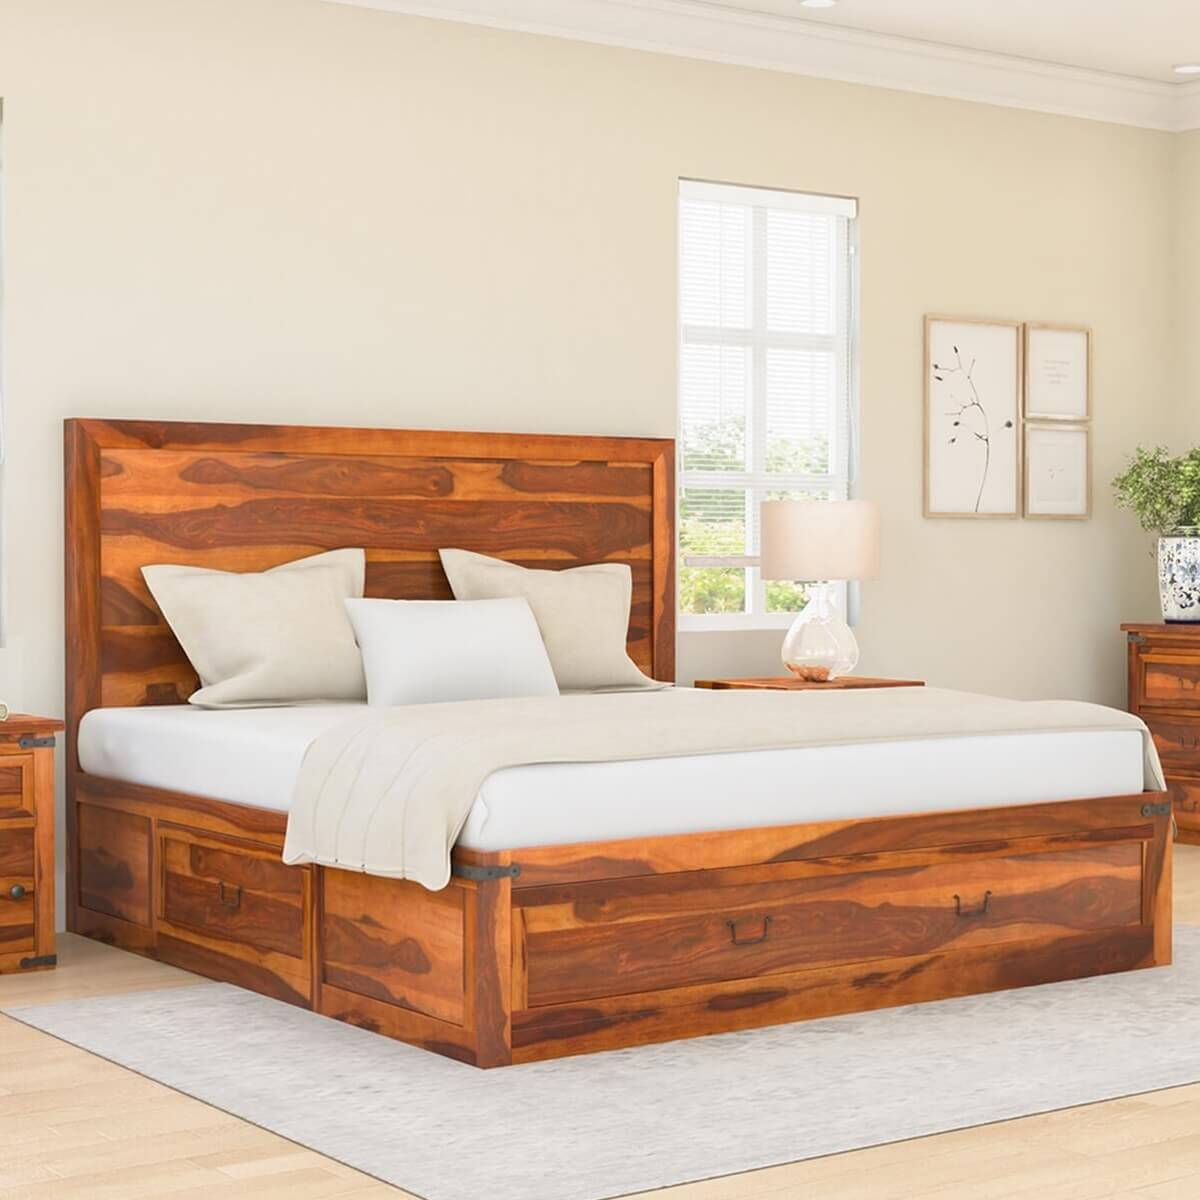 Solid Wood Bedroom Suites Rustic Solid Wood Furniture And Home Decor Sierra Living Concepts